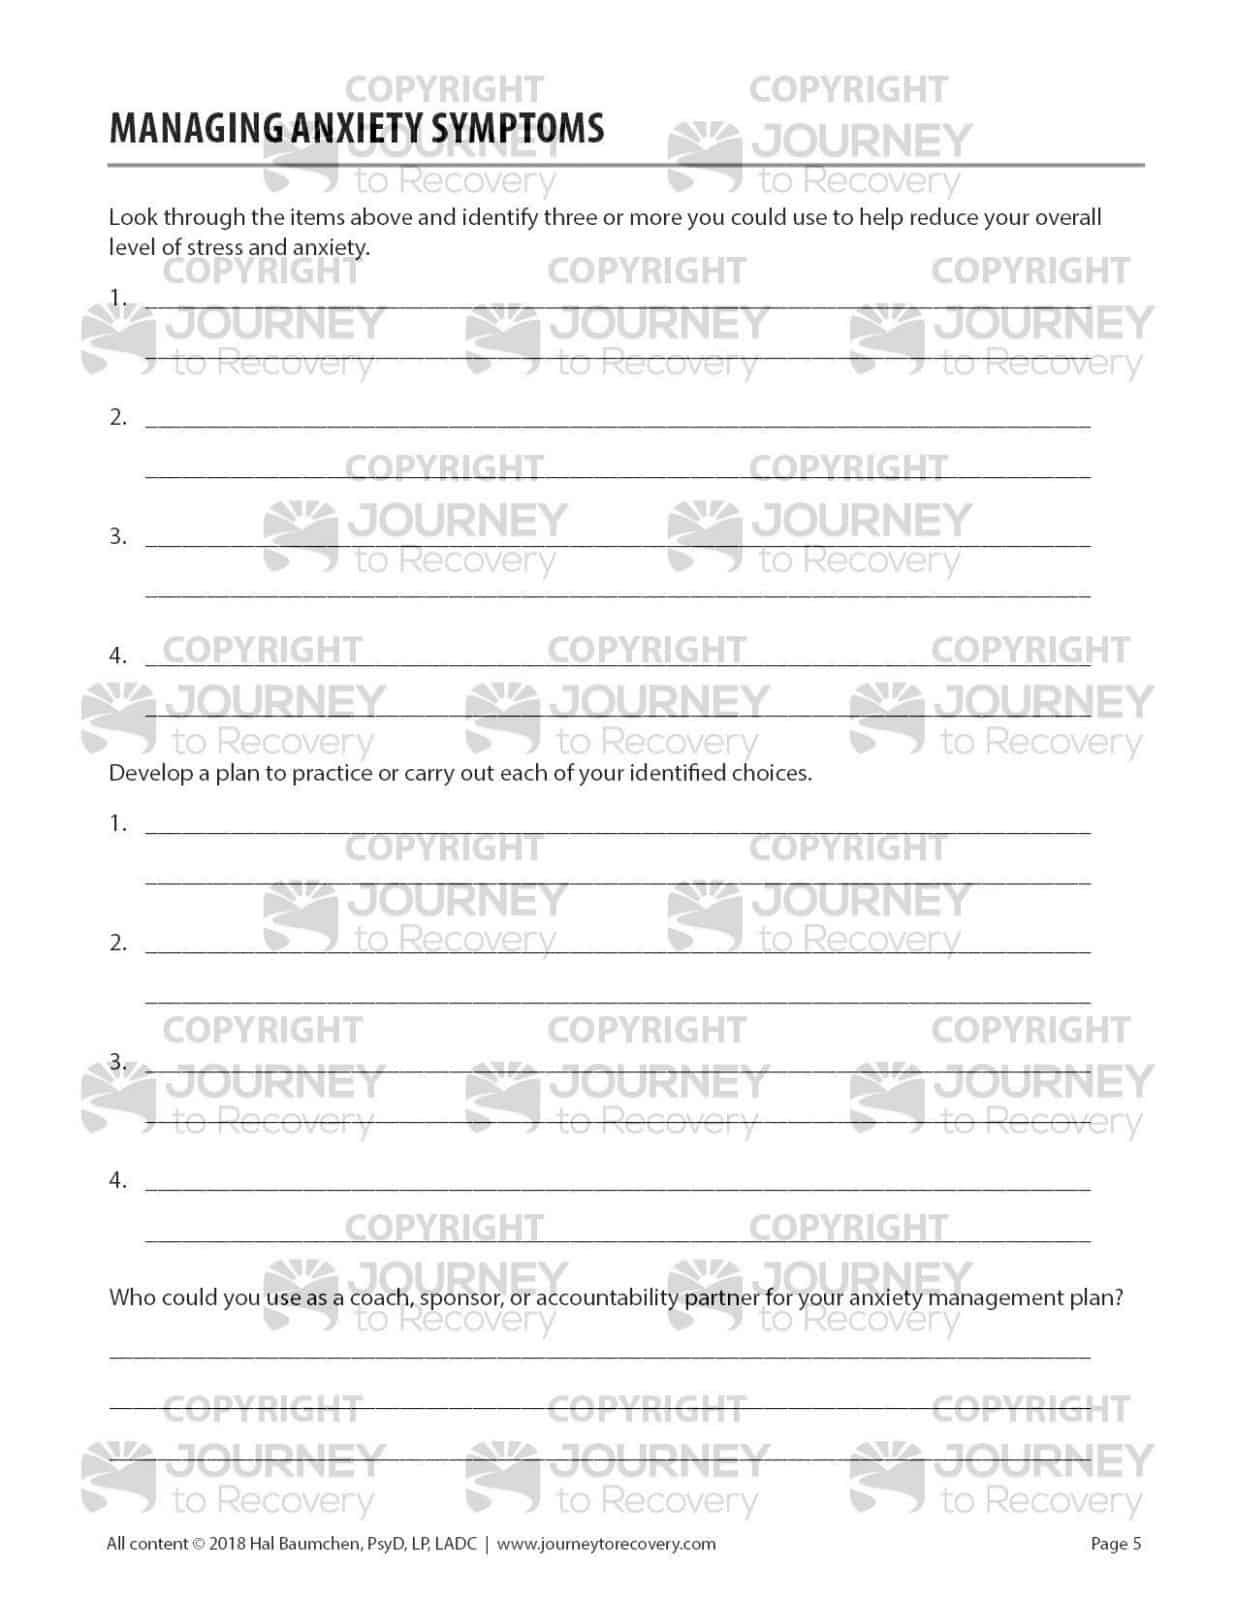 Managing Anxiety Symptoms Cod Worksheet